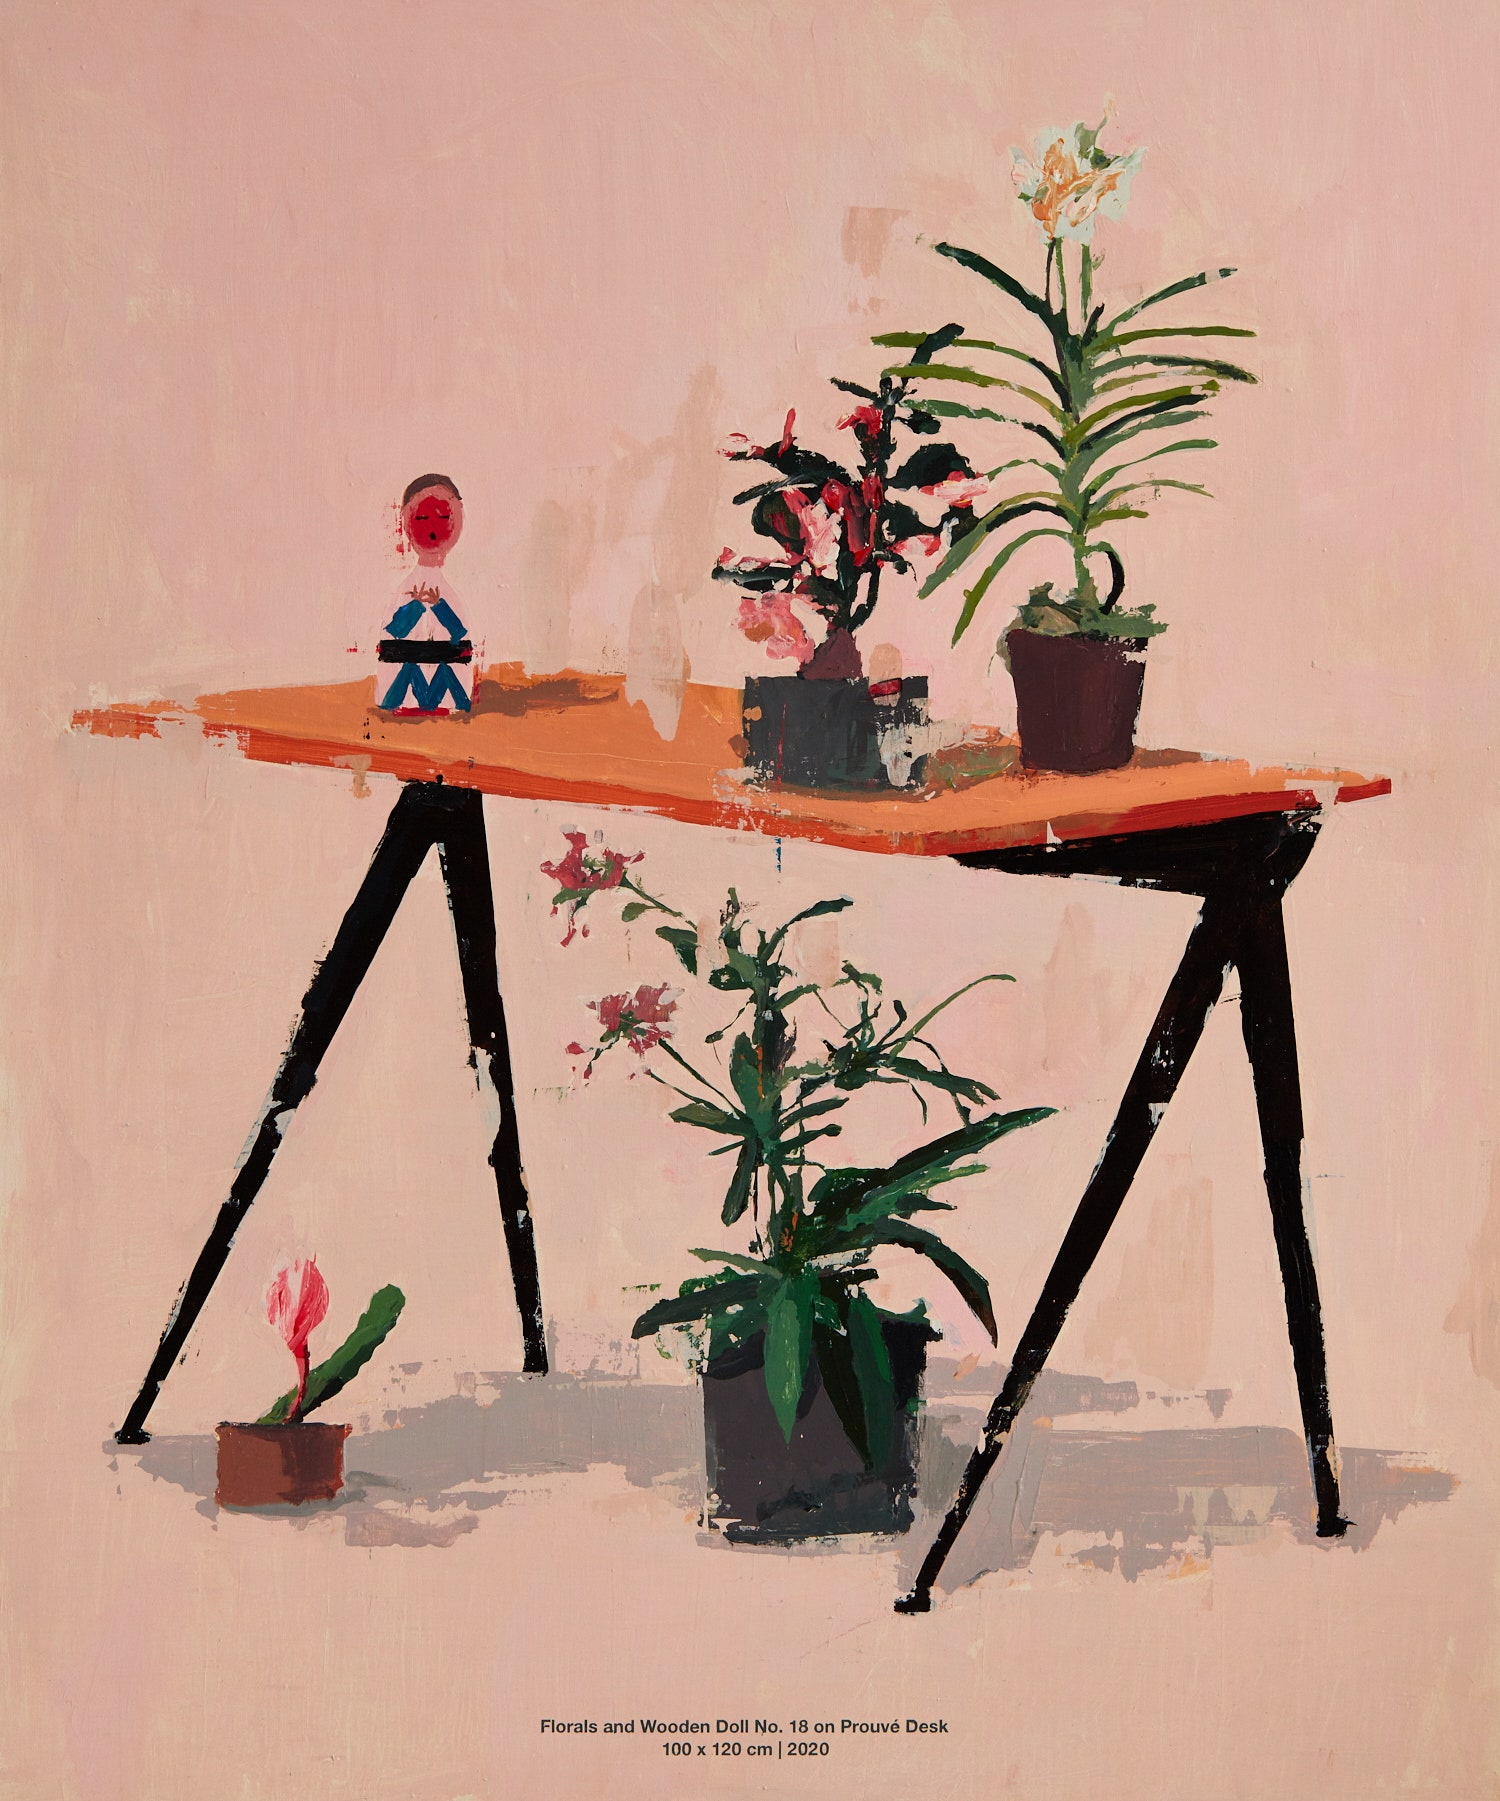 Flower and Wooden Doll No. 18 on Prouve Desk. 2020. 100 x 120 cm.